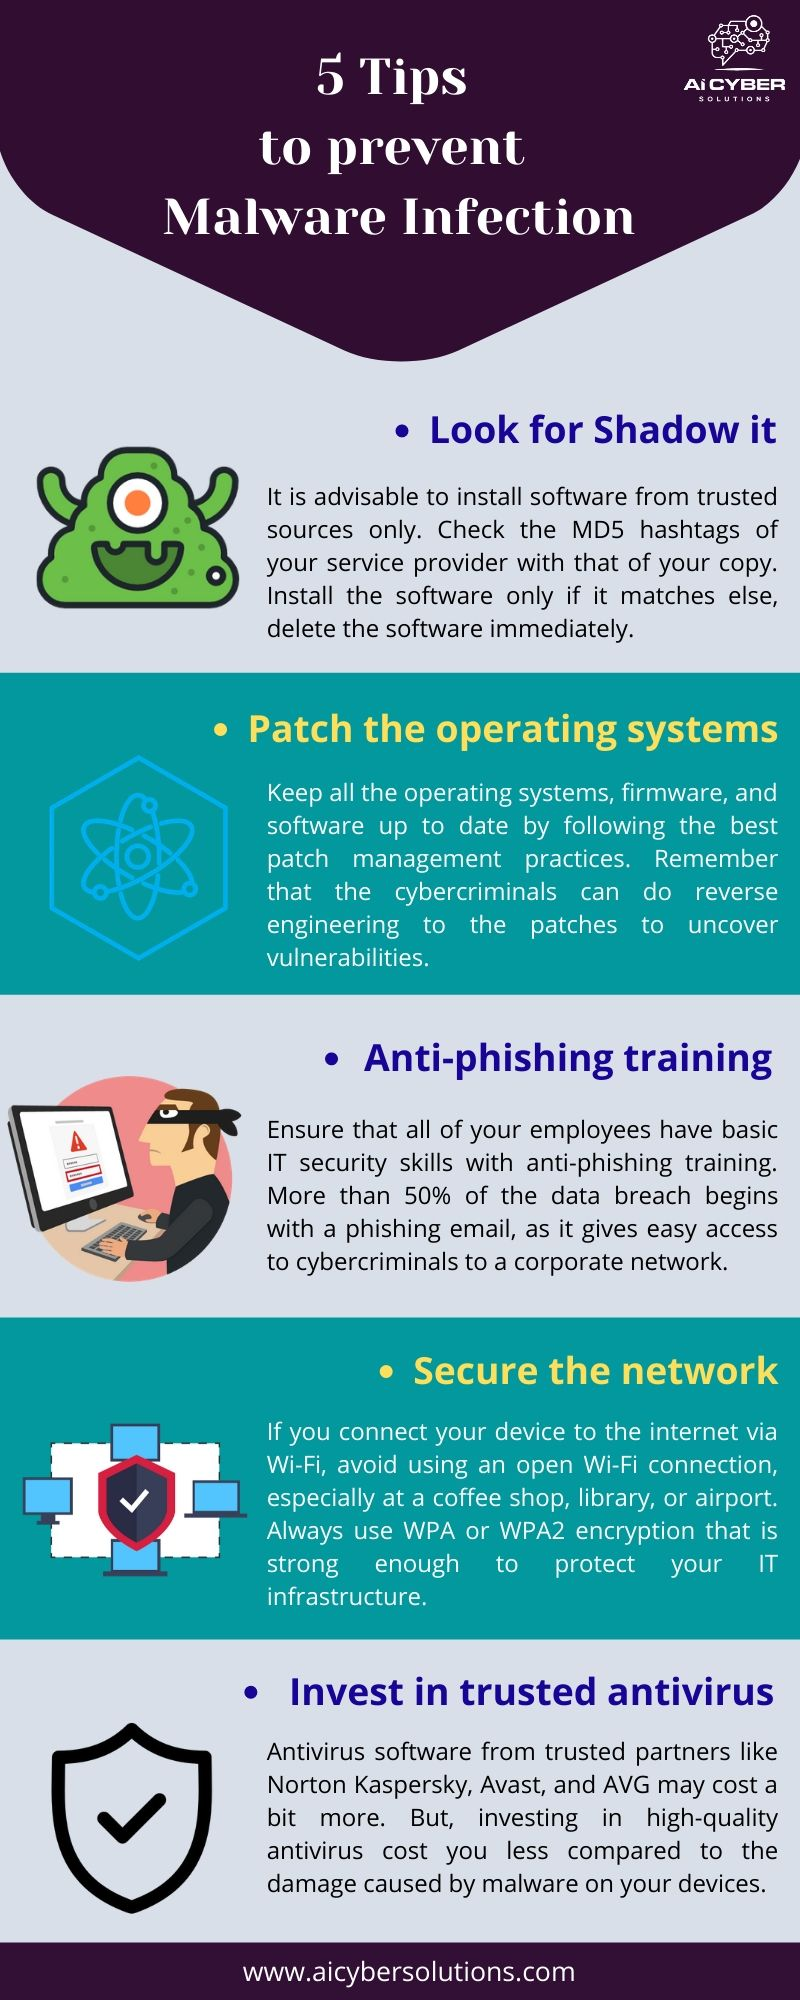 5 Tips to Prevent Malware Infections